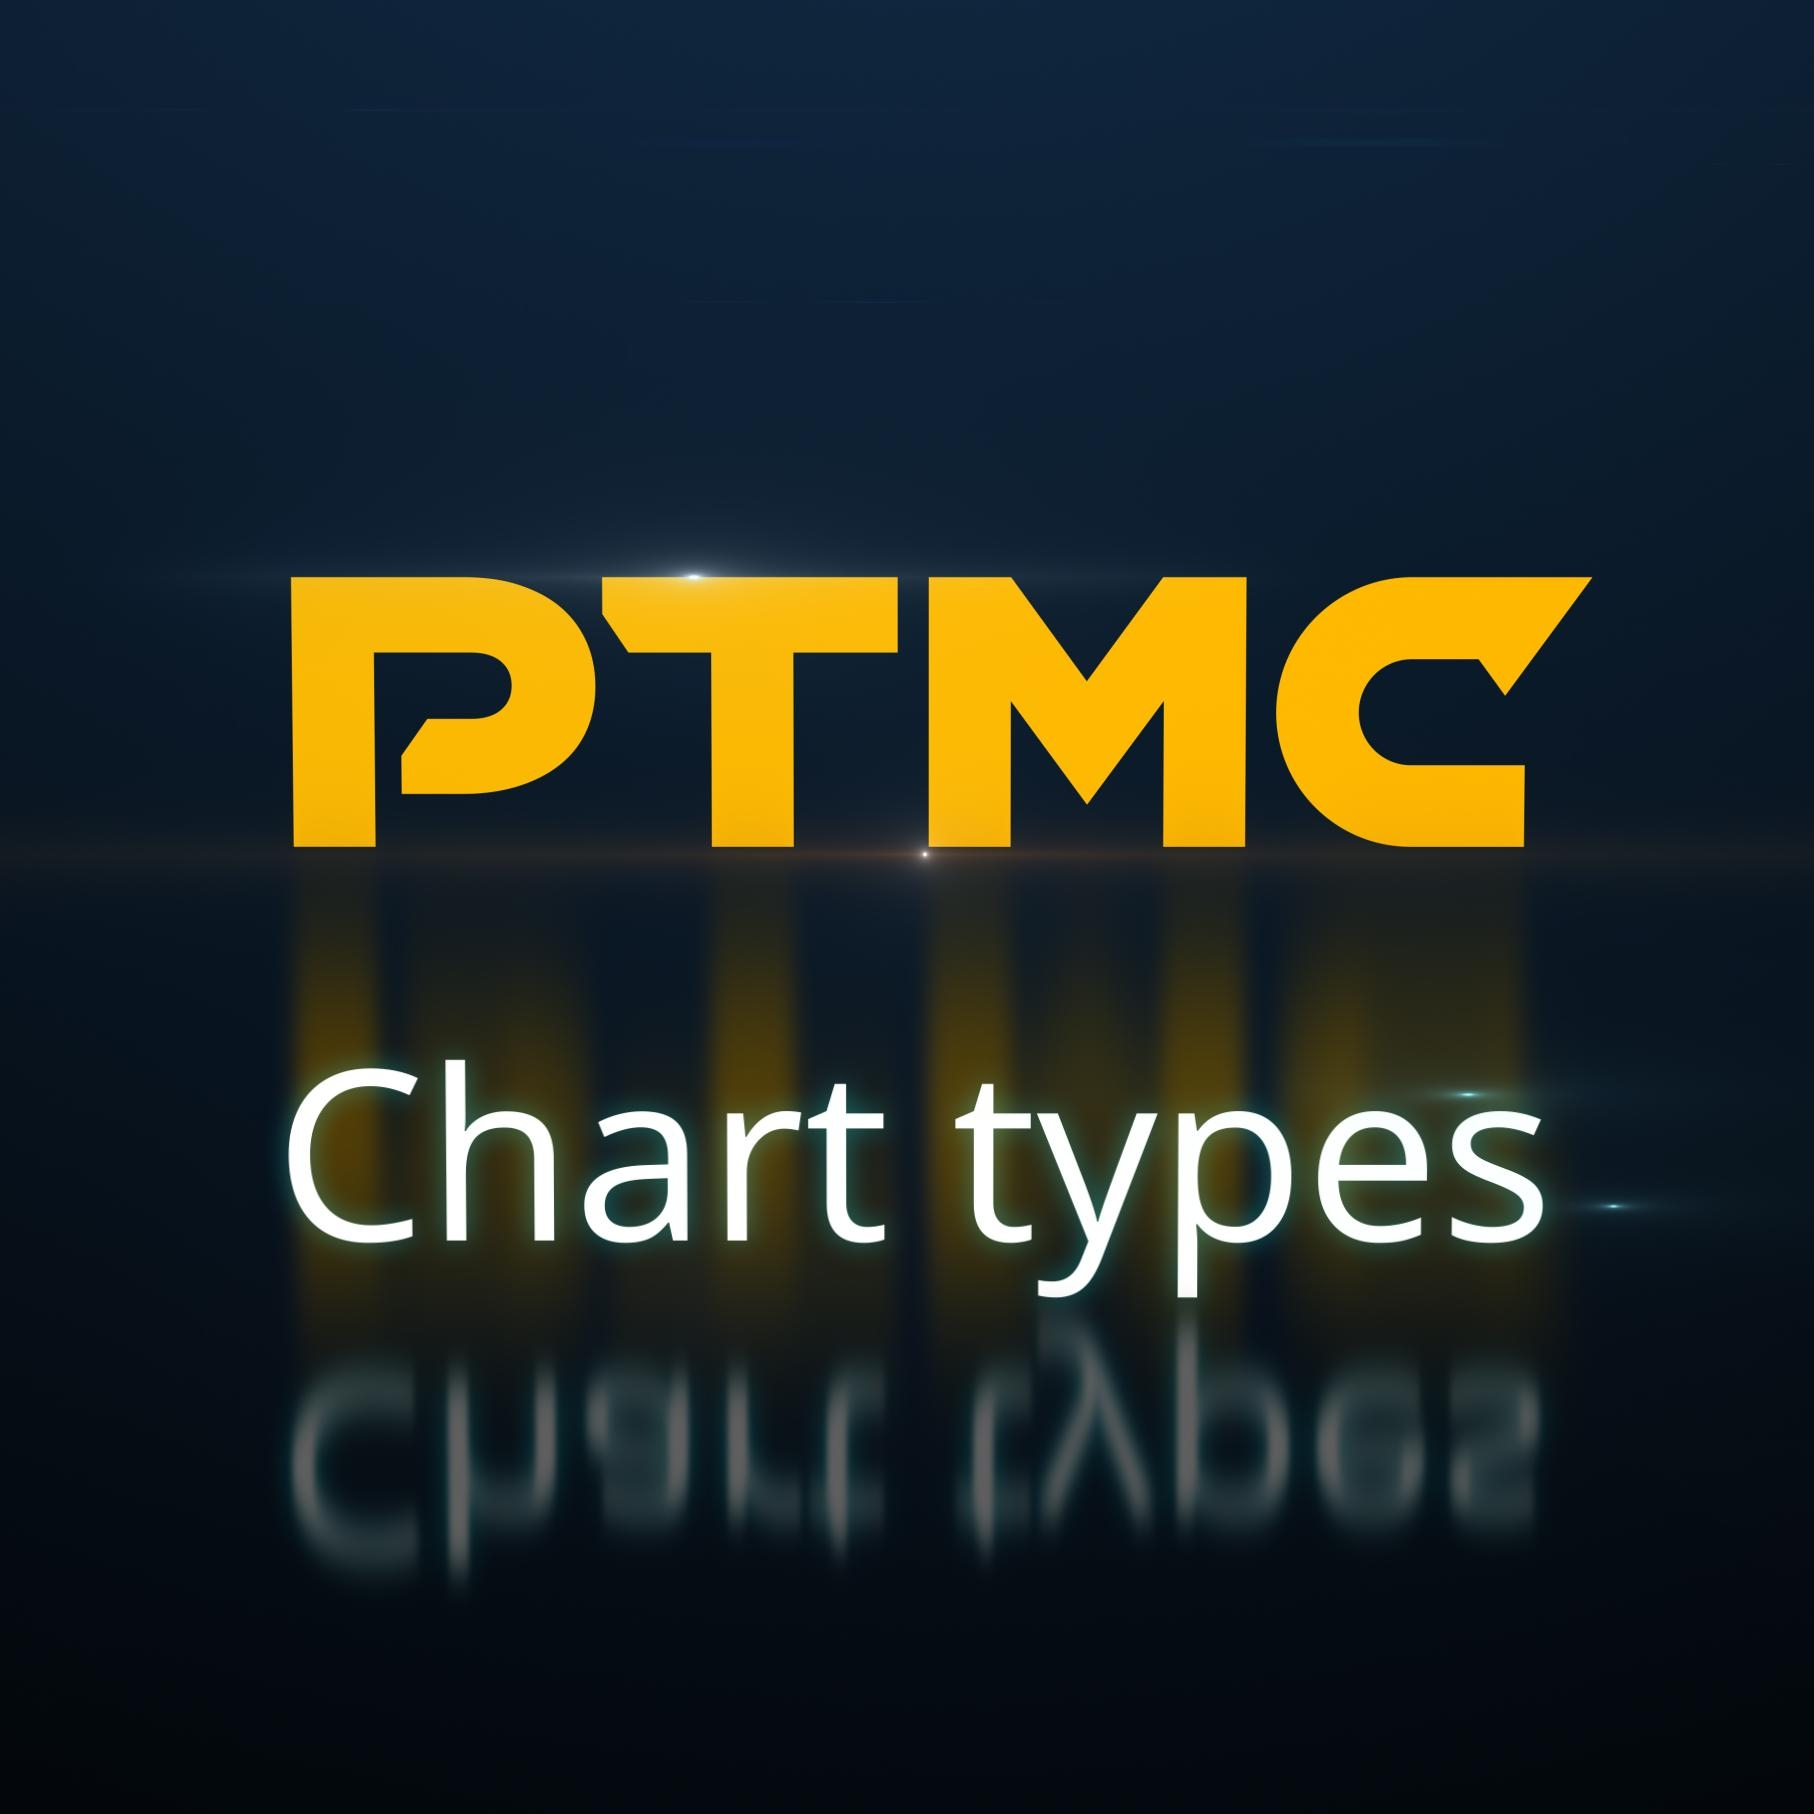 Chart types in PTMC platform (Video)